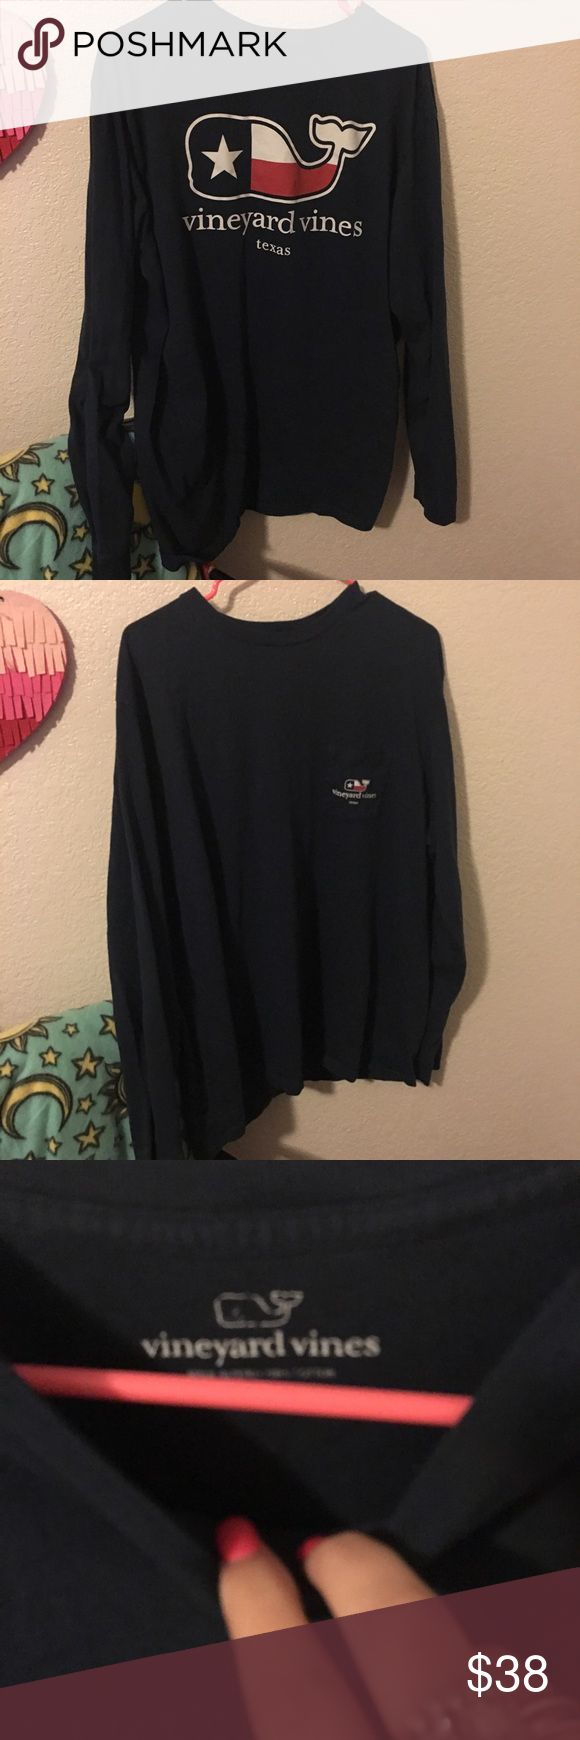 Vineyard Vines Long Sleeve Navy Texas Tee Like new!! Worn a handful of times. No signs of wear. Men's/Unisex XL. Absolutely NO TRADES Vineyard Vines Tops Tees - Long Sleeve